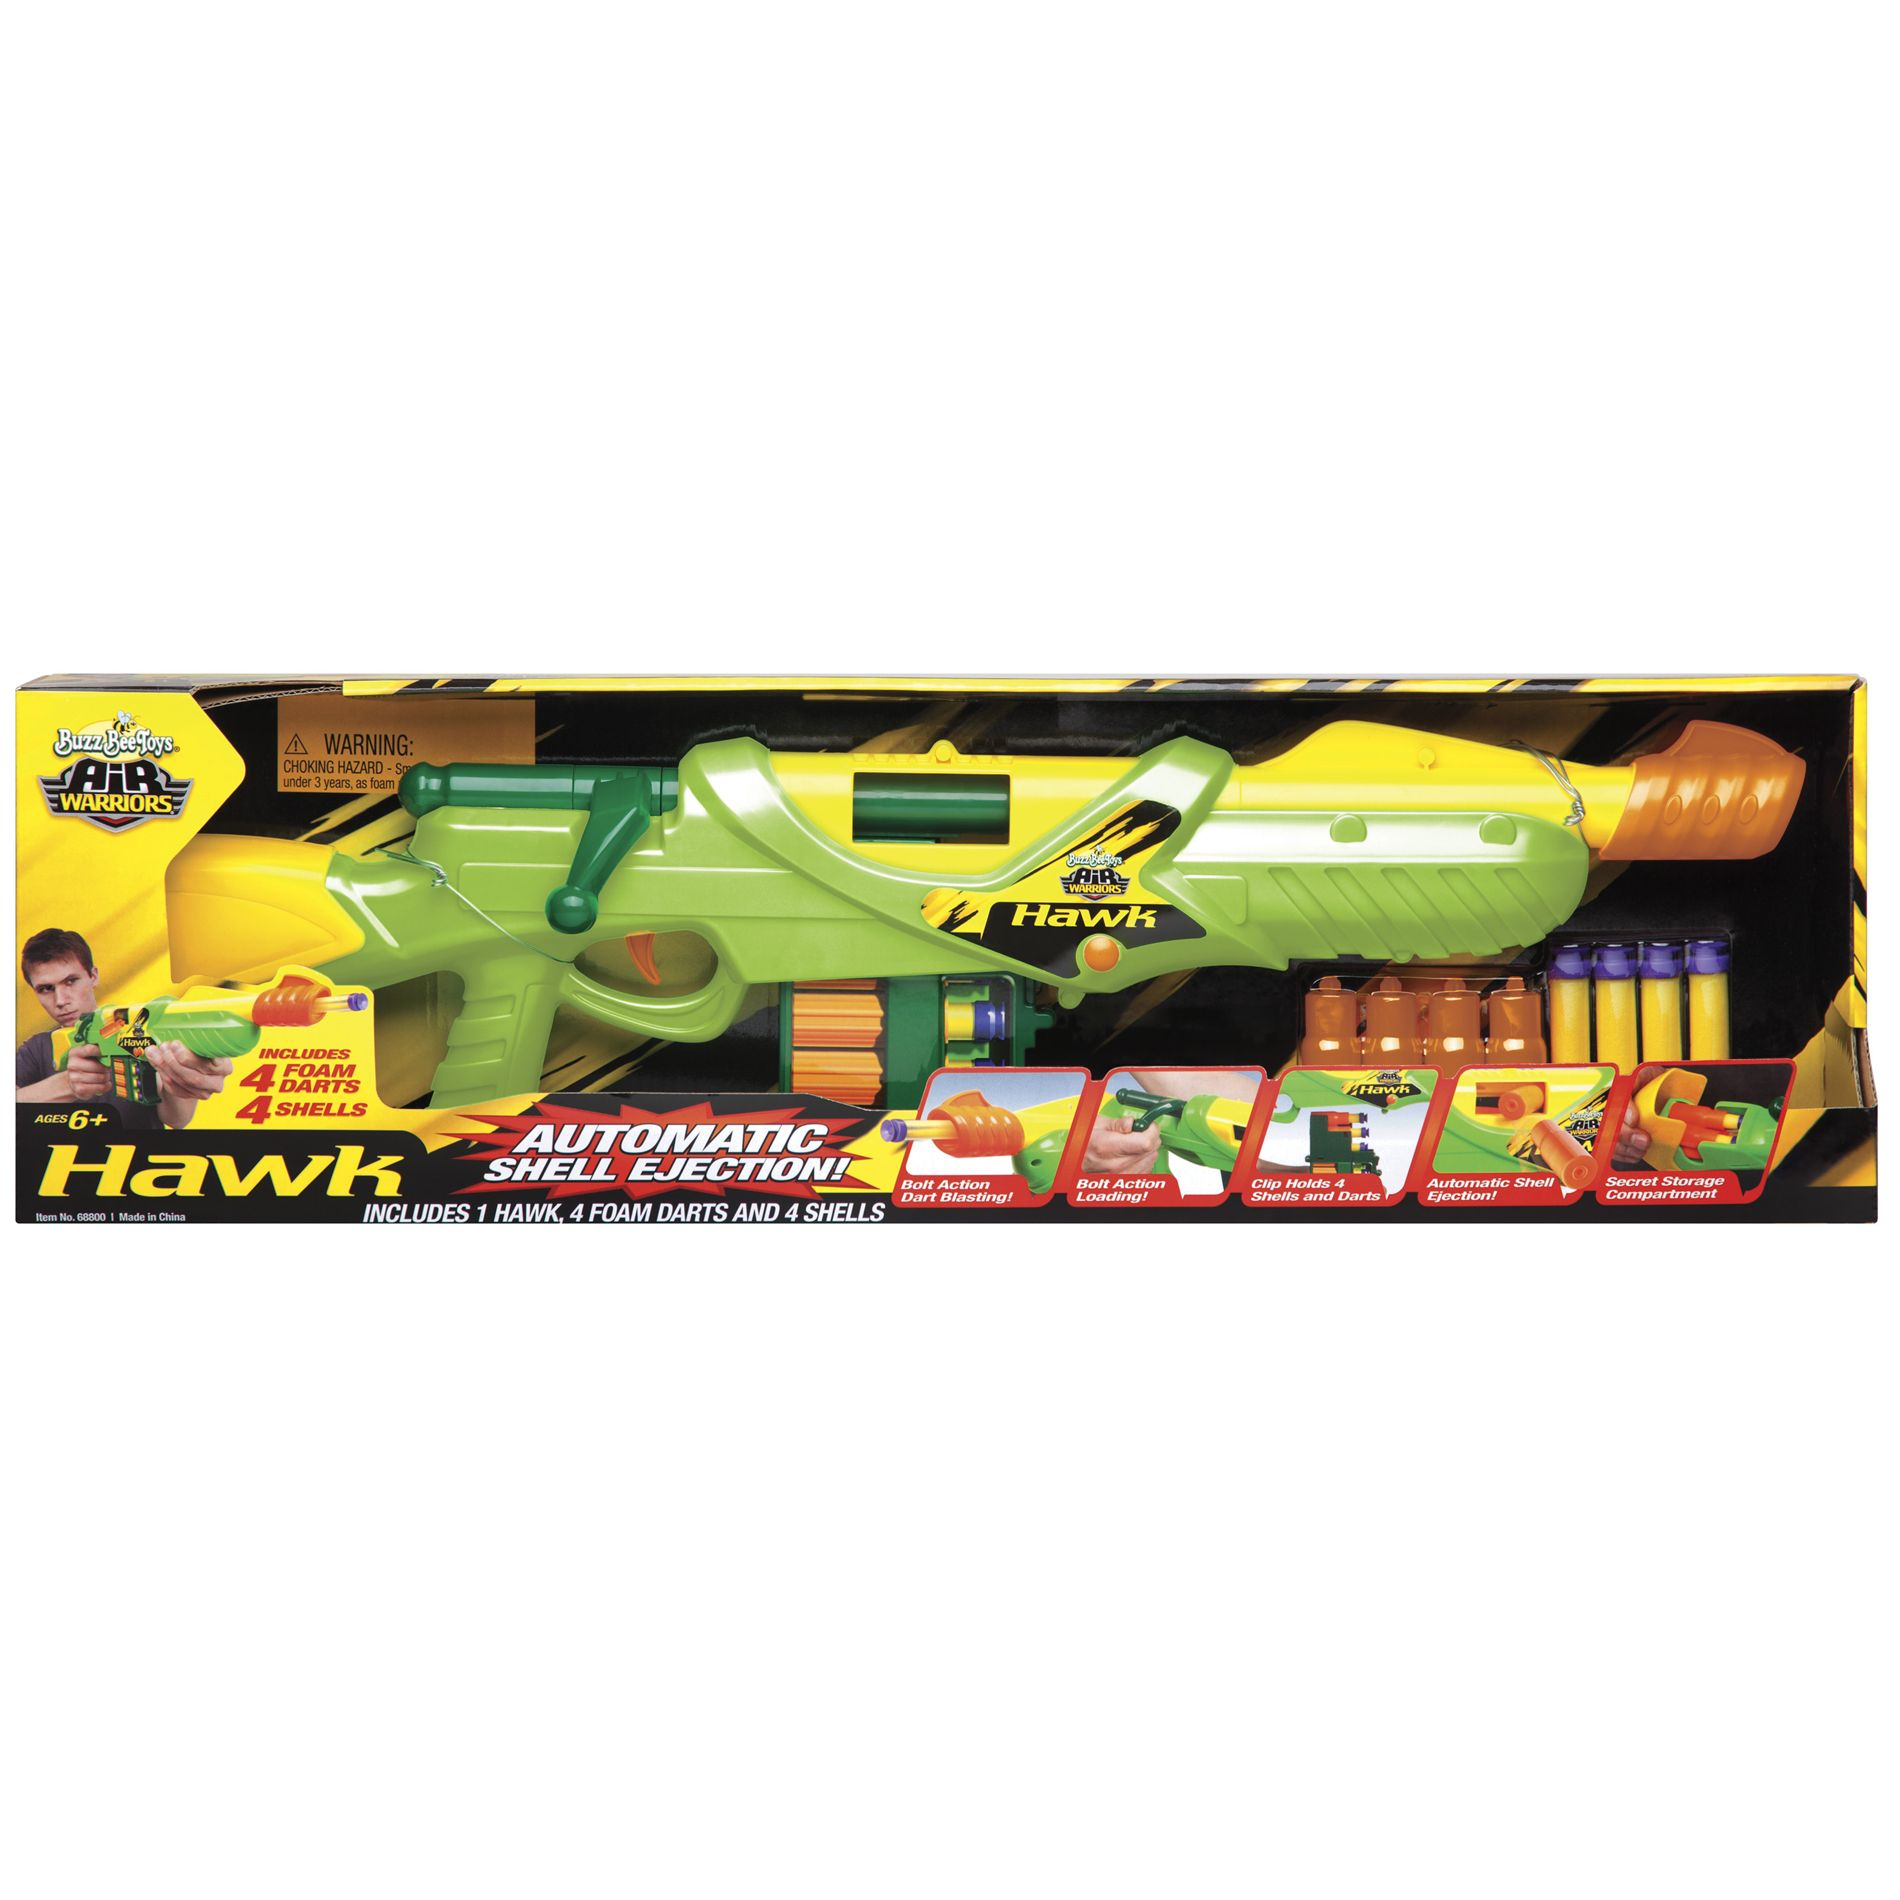 Buzz Bee Toys Hawk